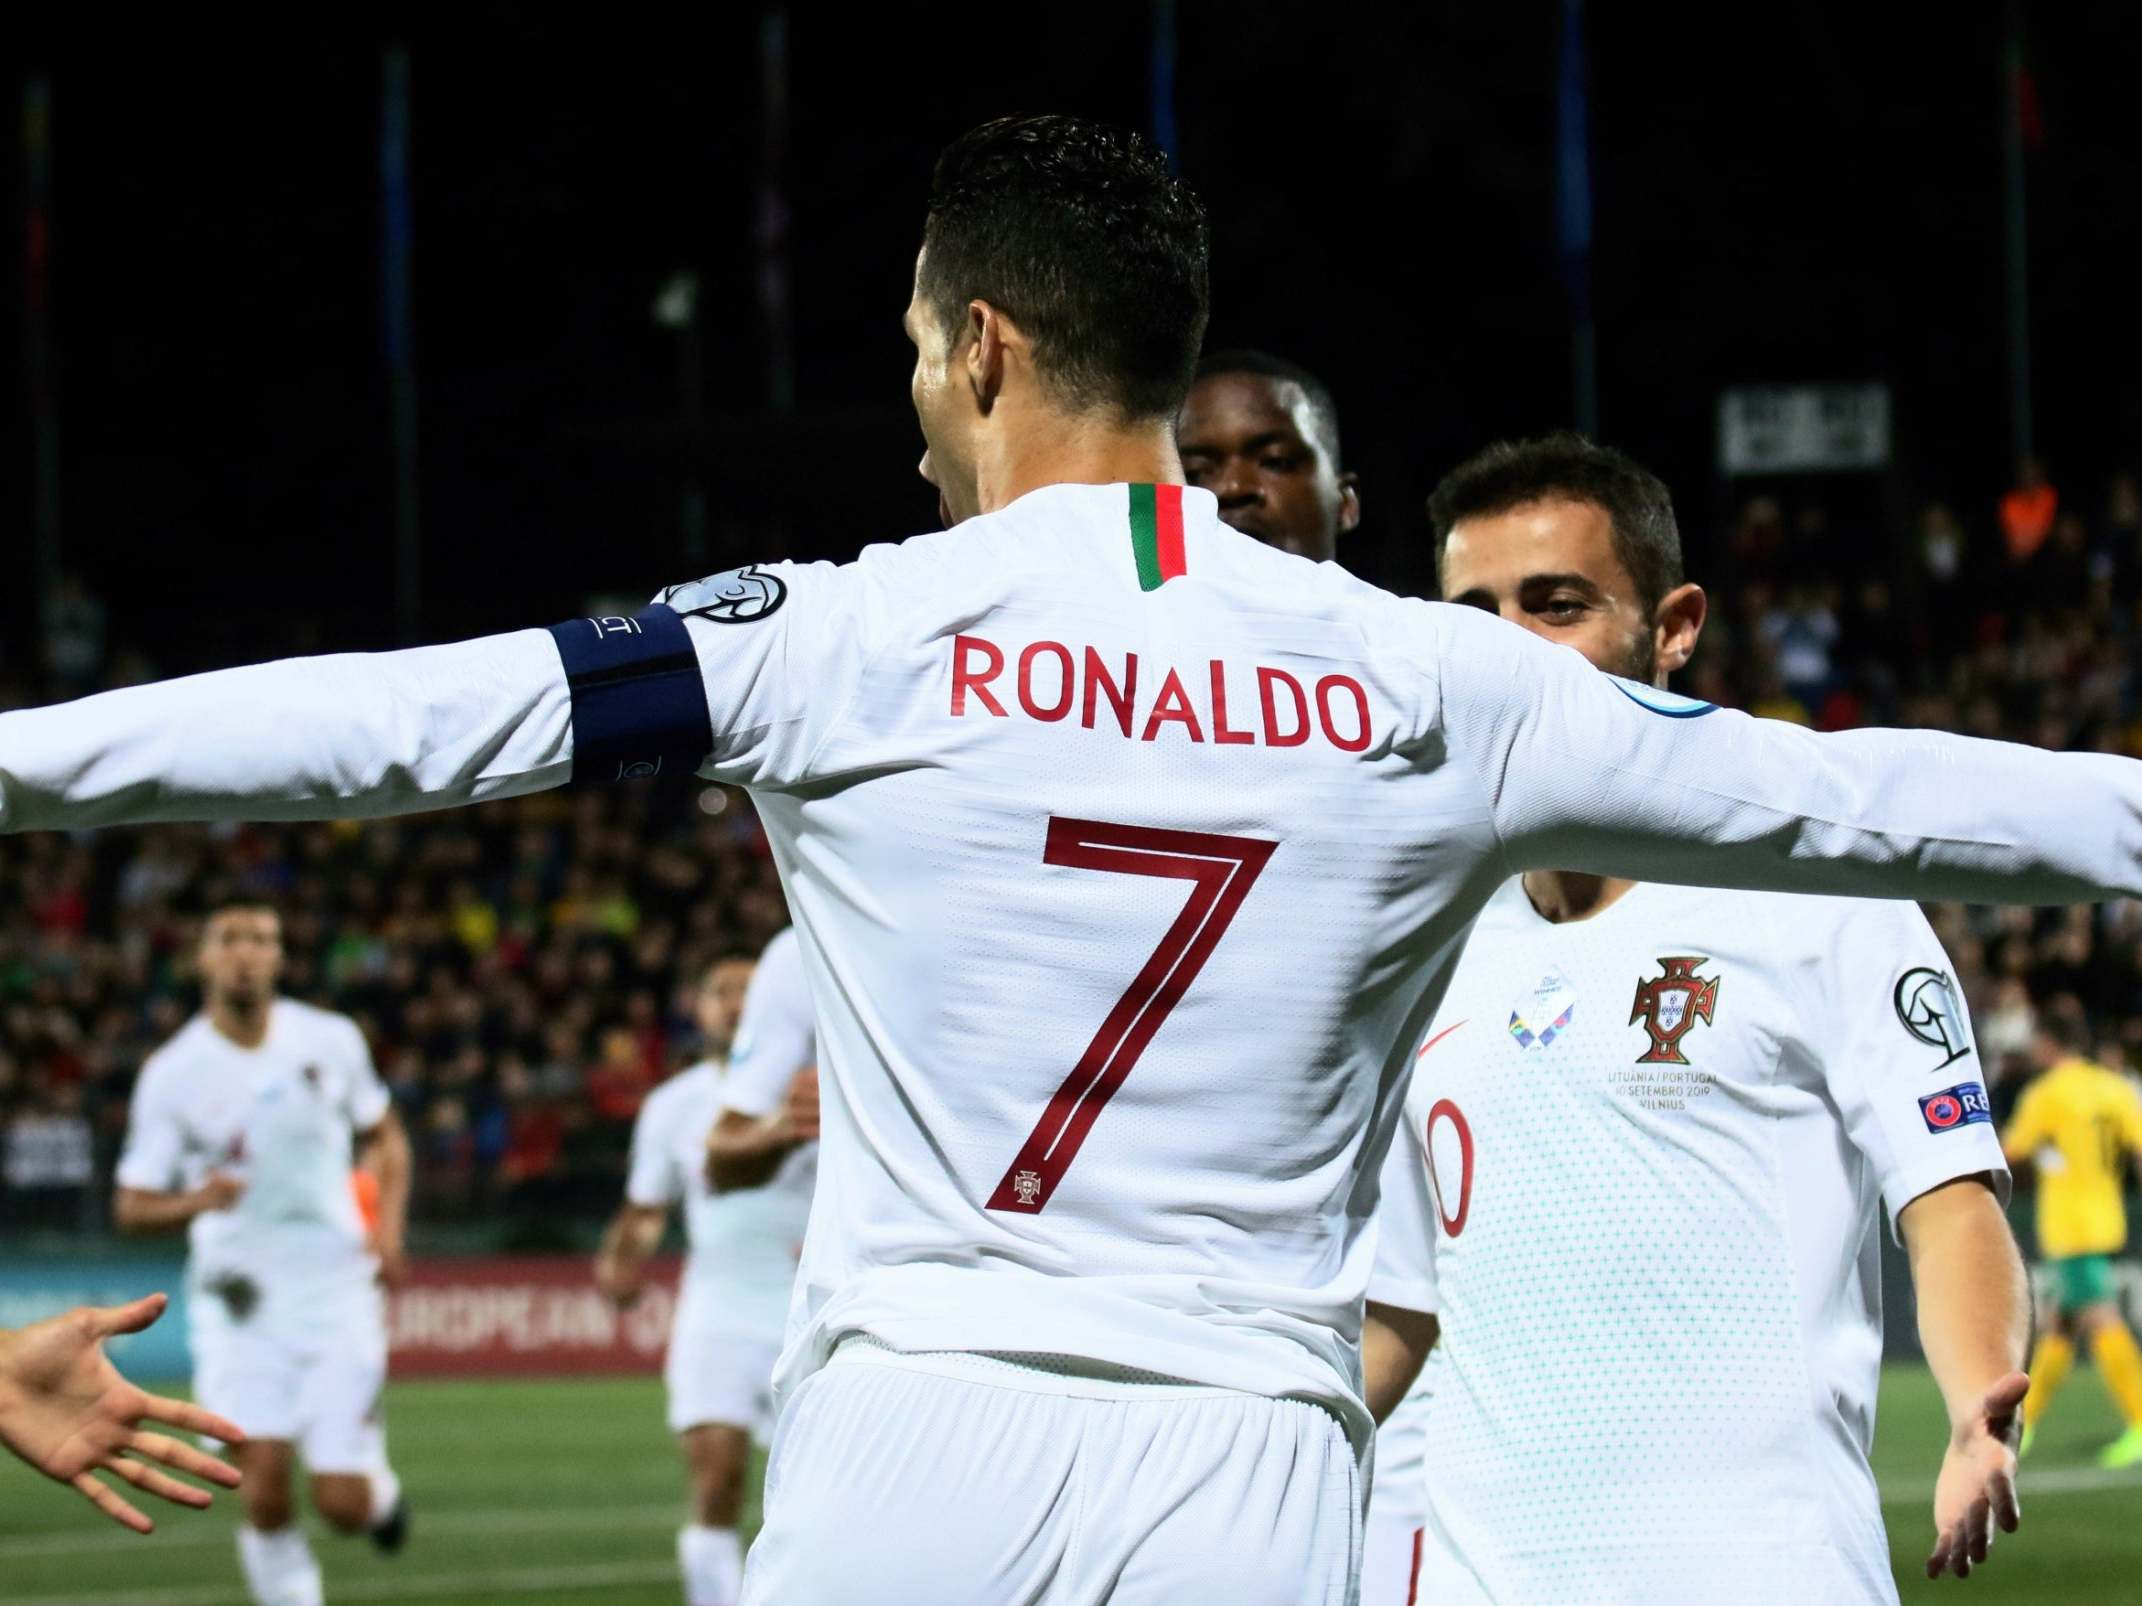 When will Cristiano Ronaldo become all-time leading international goalscorer? We crunch the numbers